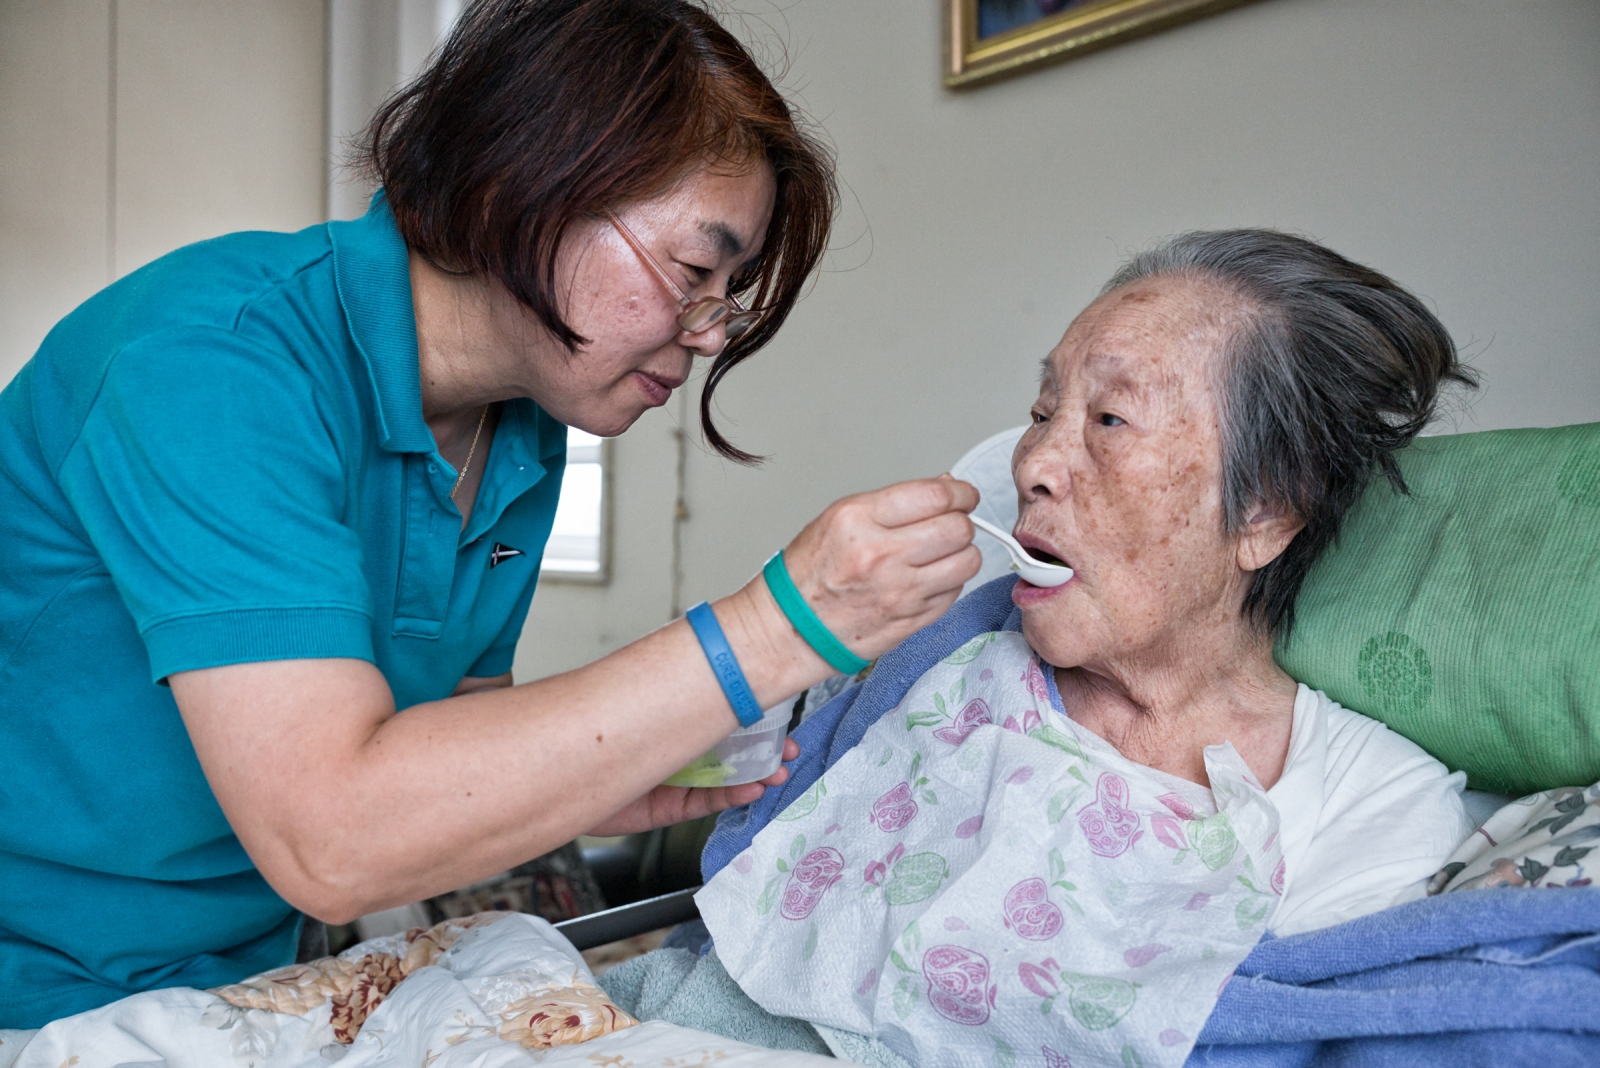 Art and Documentary Photography - Loading Hillman_Nursing_Immigrant Caregive_LoRes_13.jpg